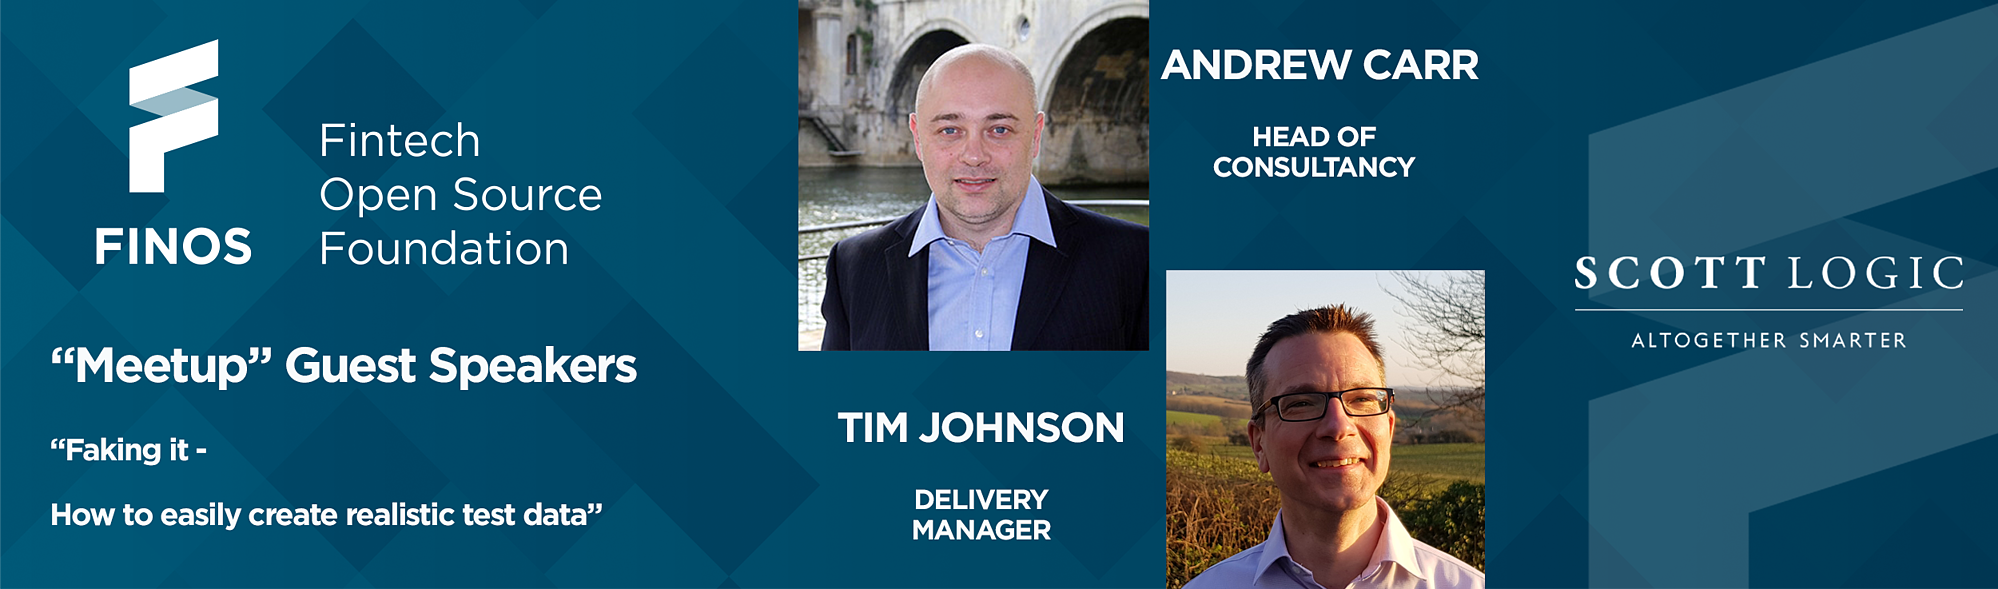 FINOS-meetup-guest-speakers-andrew-carr-tim-johnson-email-banner